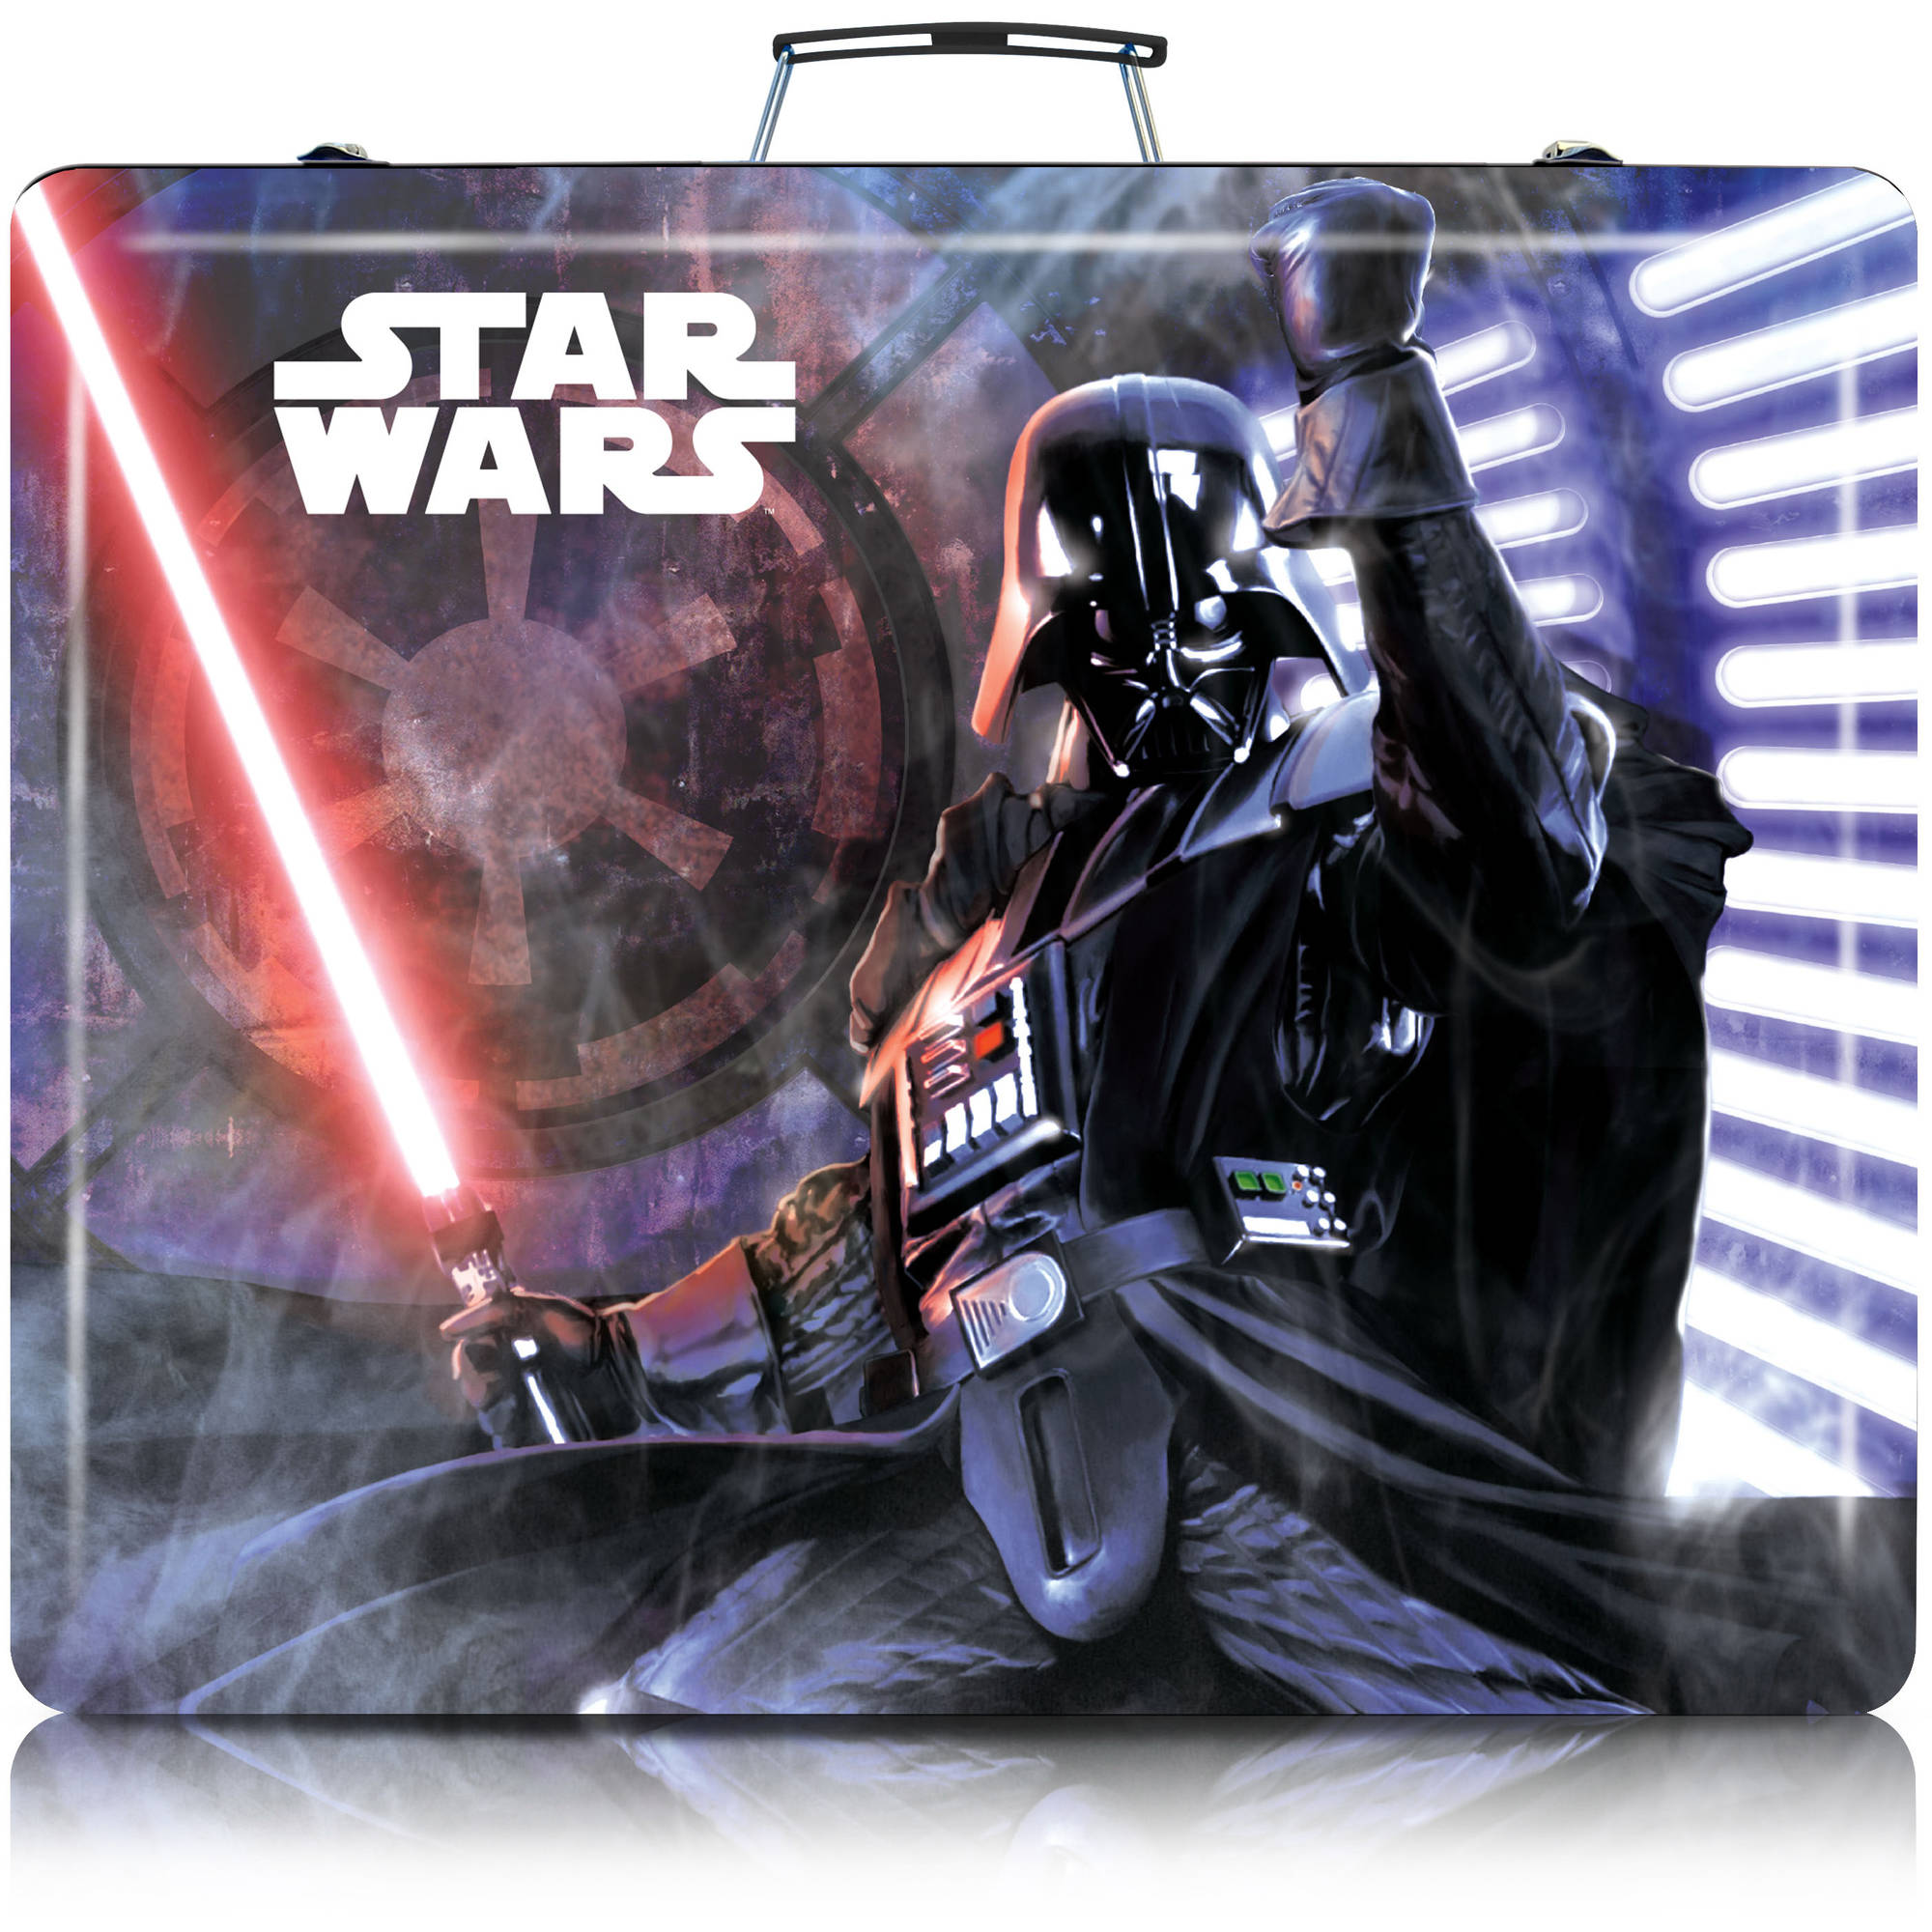 Star Wars Large Character Art Activity Set